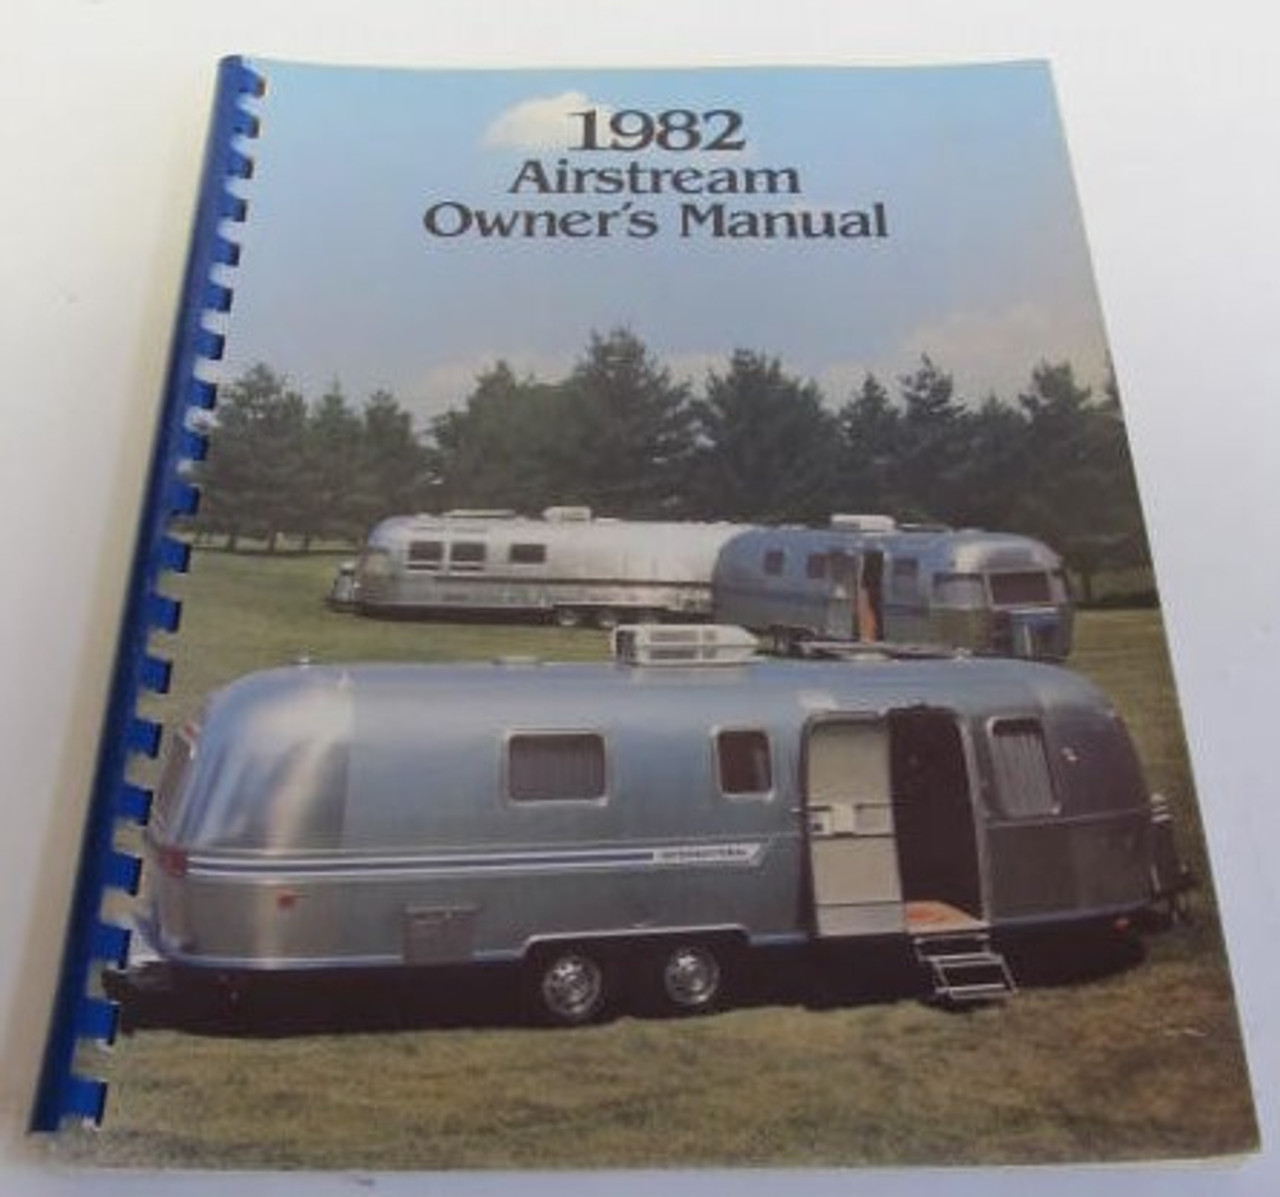 1982 Airstream Owner's Manual (BL003)